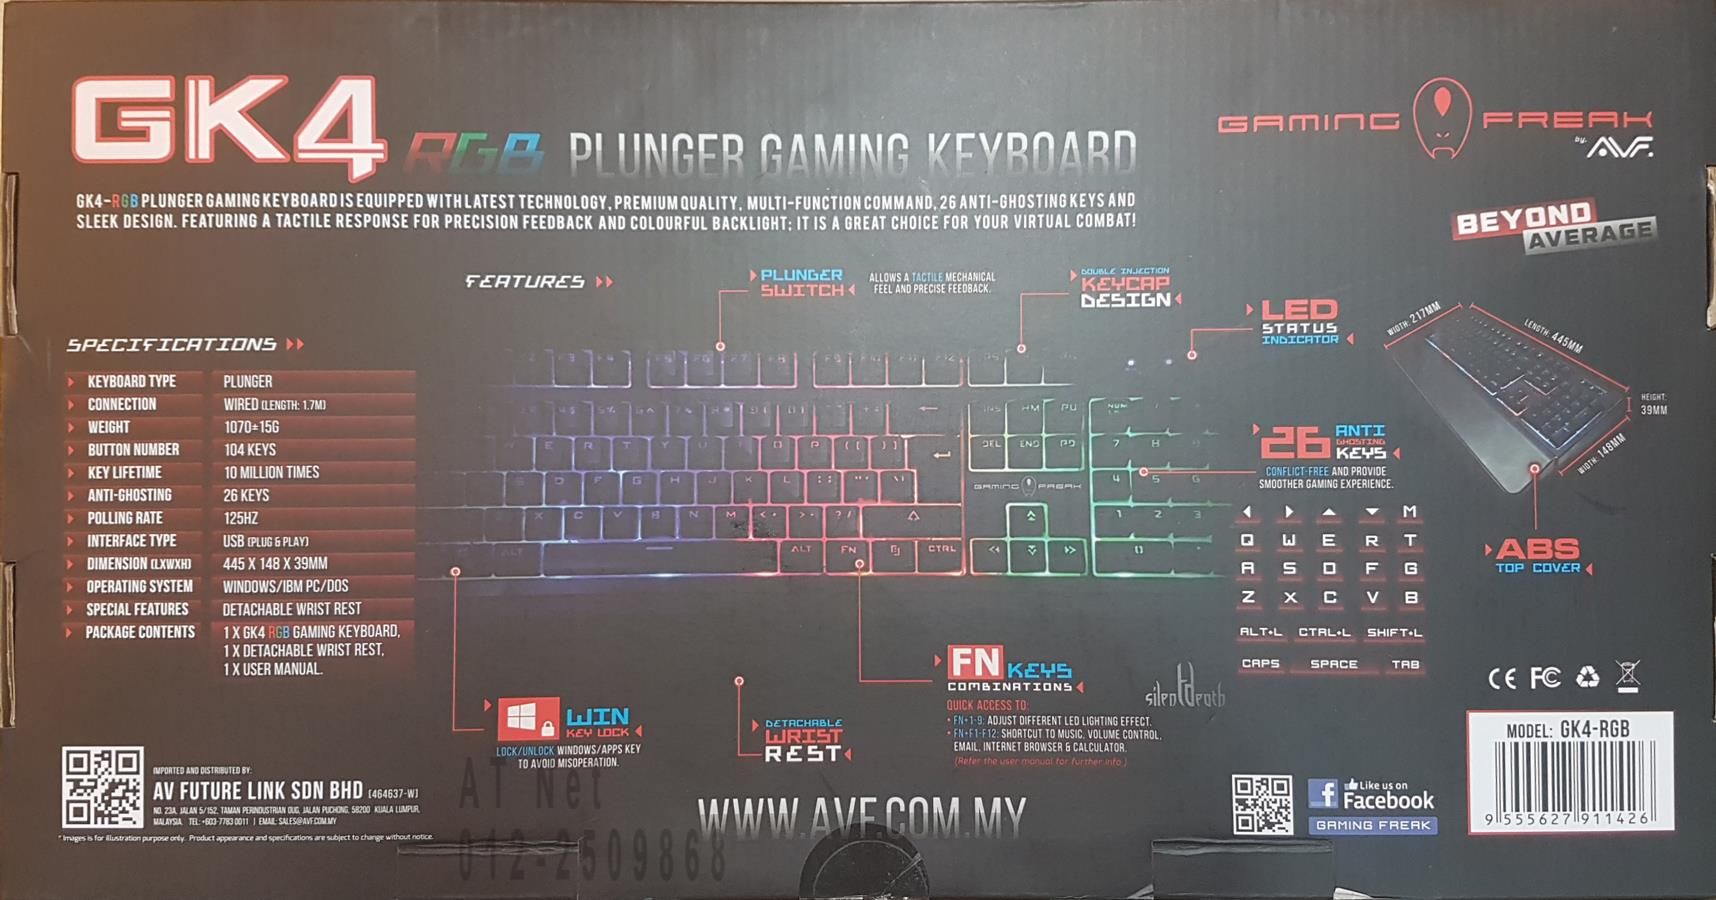 AVF GAMING FREAK RGB GAMING KEYBOARD GK4-RGB